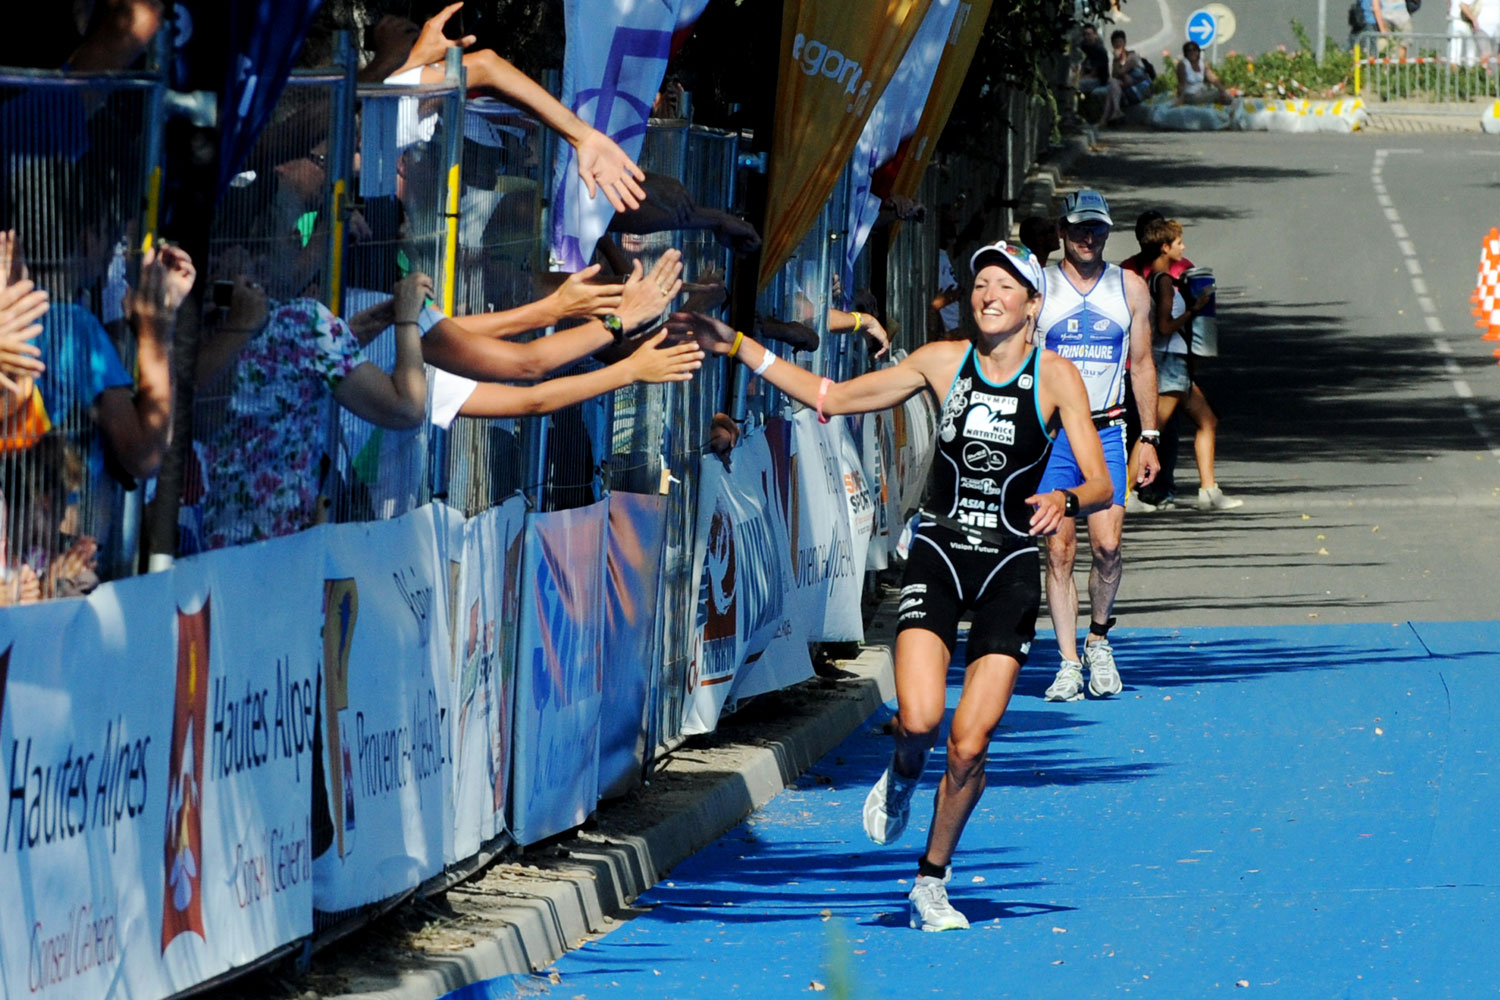 Jeanne Collange celebrates with supporters after crossing the finish line of the 29th edition of the Embrun Man triathlon in southeastern France.